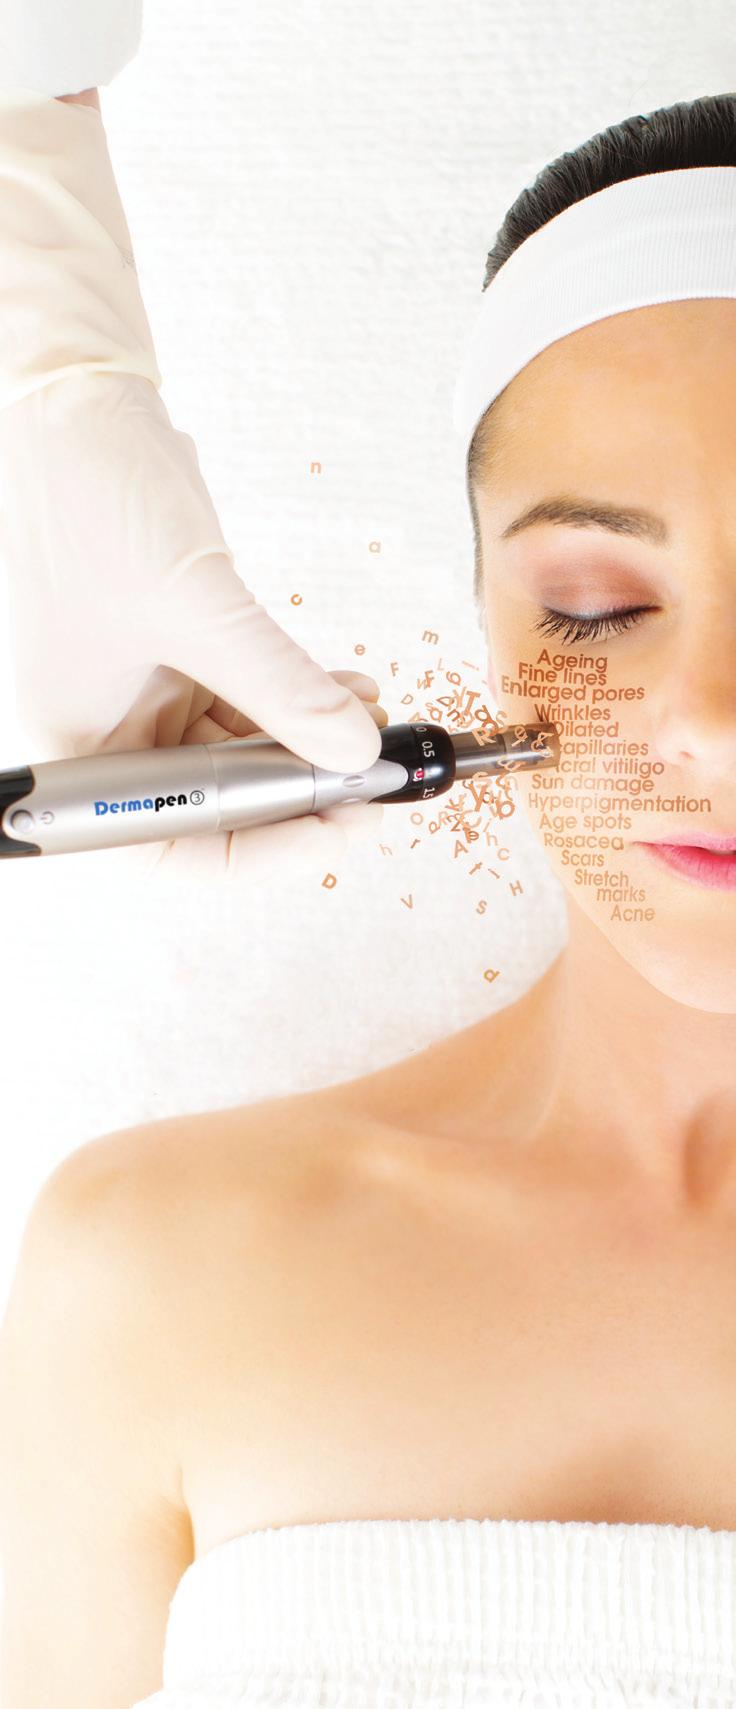 DP DERMACEUTICAL S THE CHOICE The daily use of DP Dermaceuticals and regular treatments with Dermapen enable long lasting correction and skin fortification.